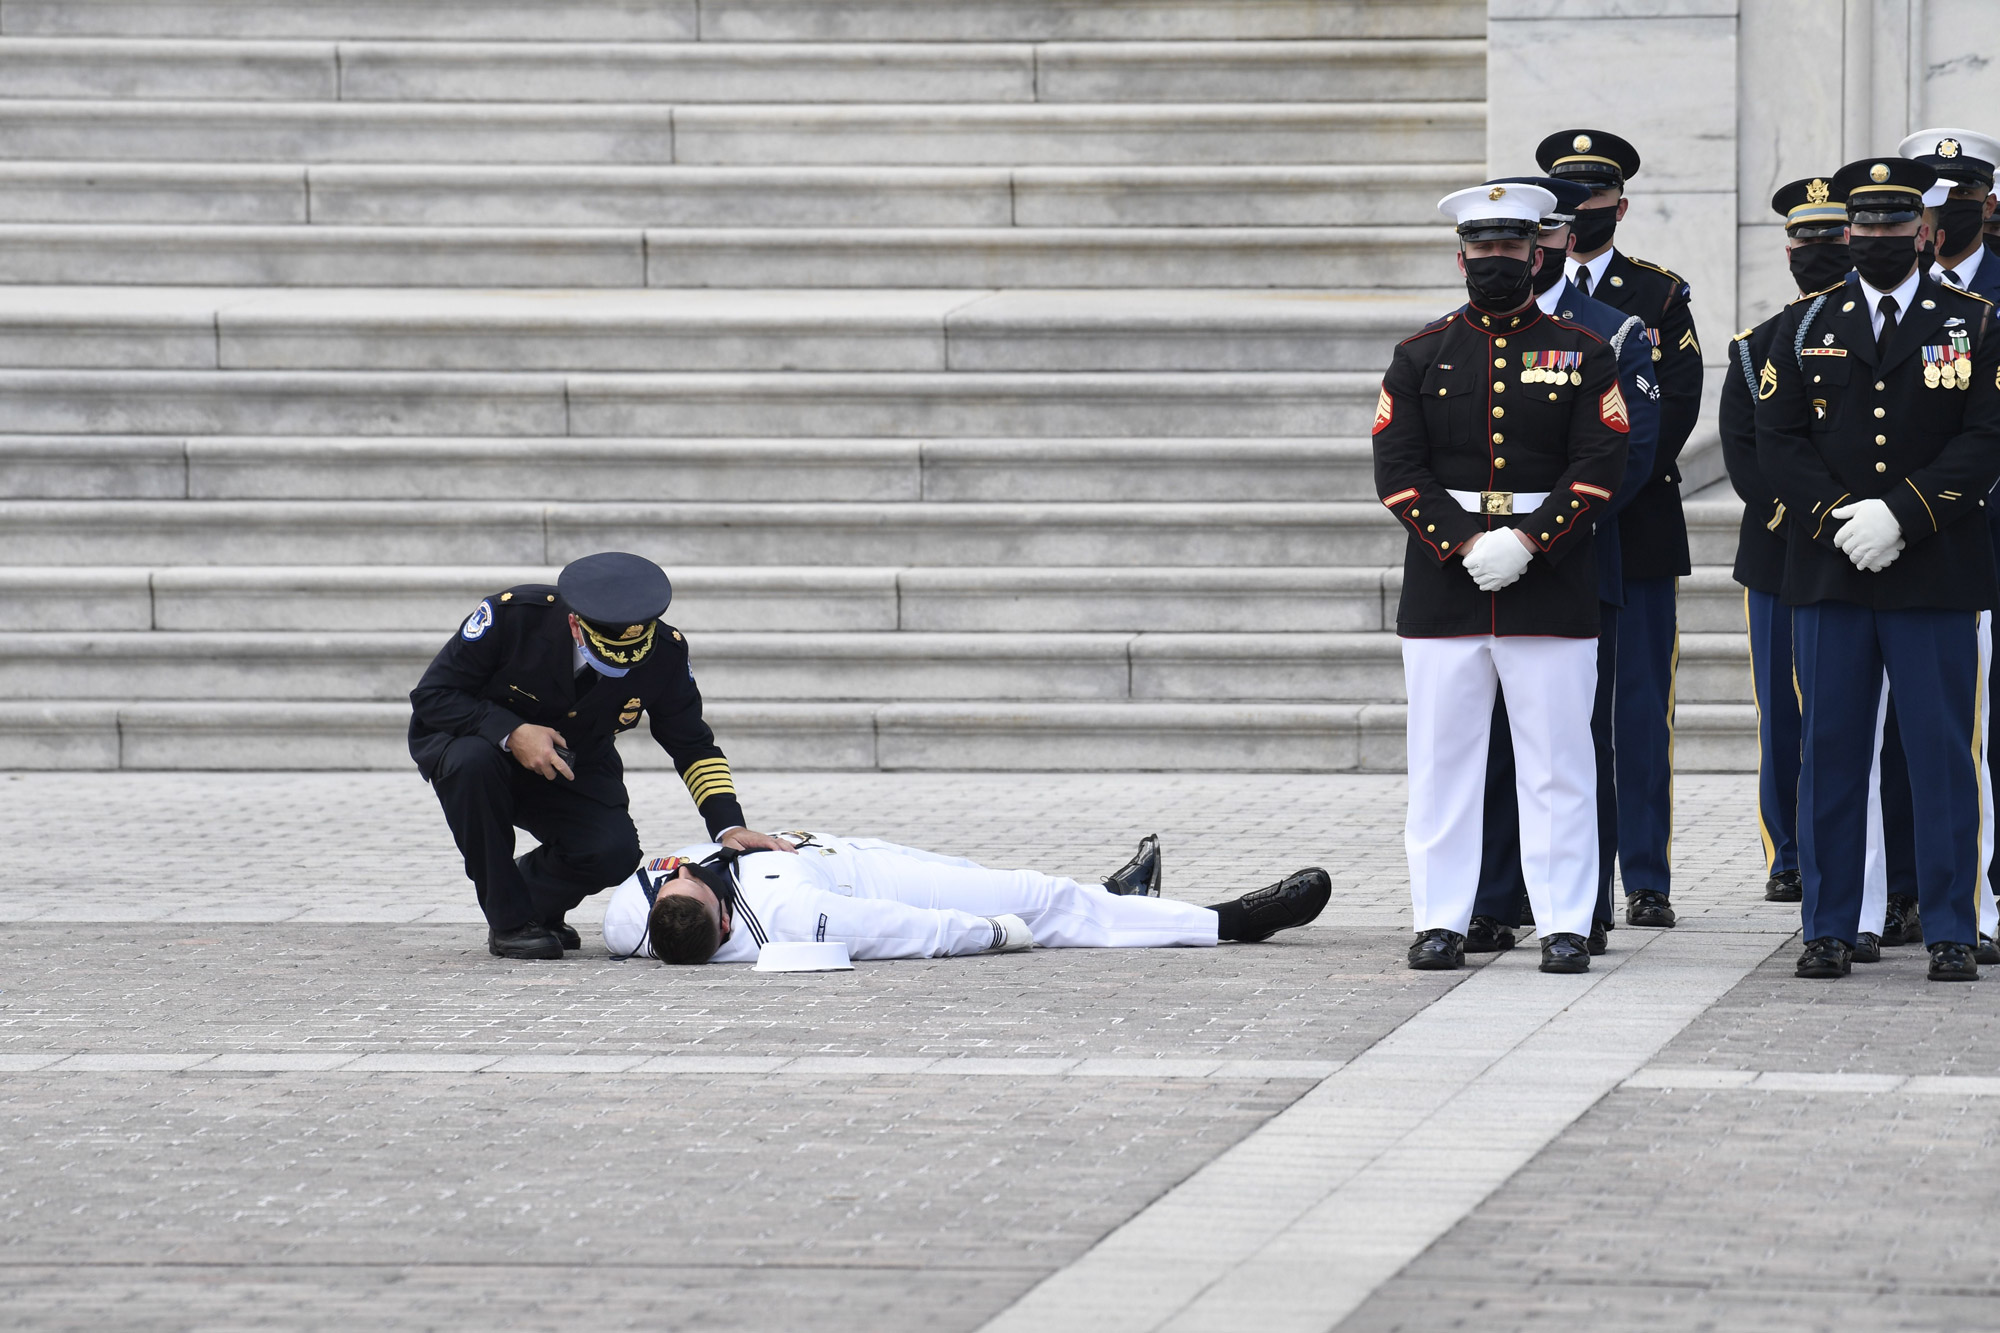 A member of a US military honor guard is checked on after collapsing in the heat of the day as a hearse carrying the casket of civil rights pioneer and longtime US Representative John Lewis arrives outside the US Capitol prior to the start of the ceremony preceding the lying in state of John Lewis in the Rotunda of the US Capitol in Washington, DC, on July 27.